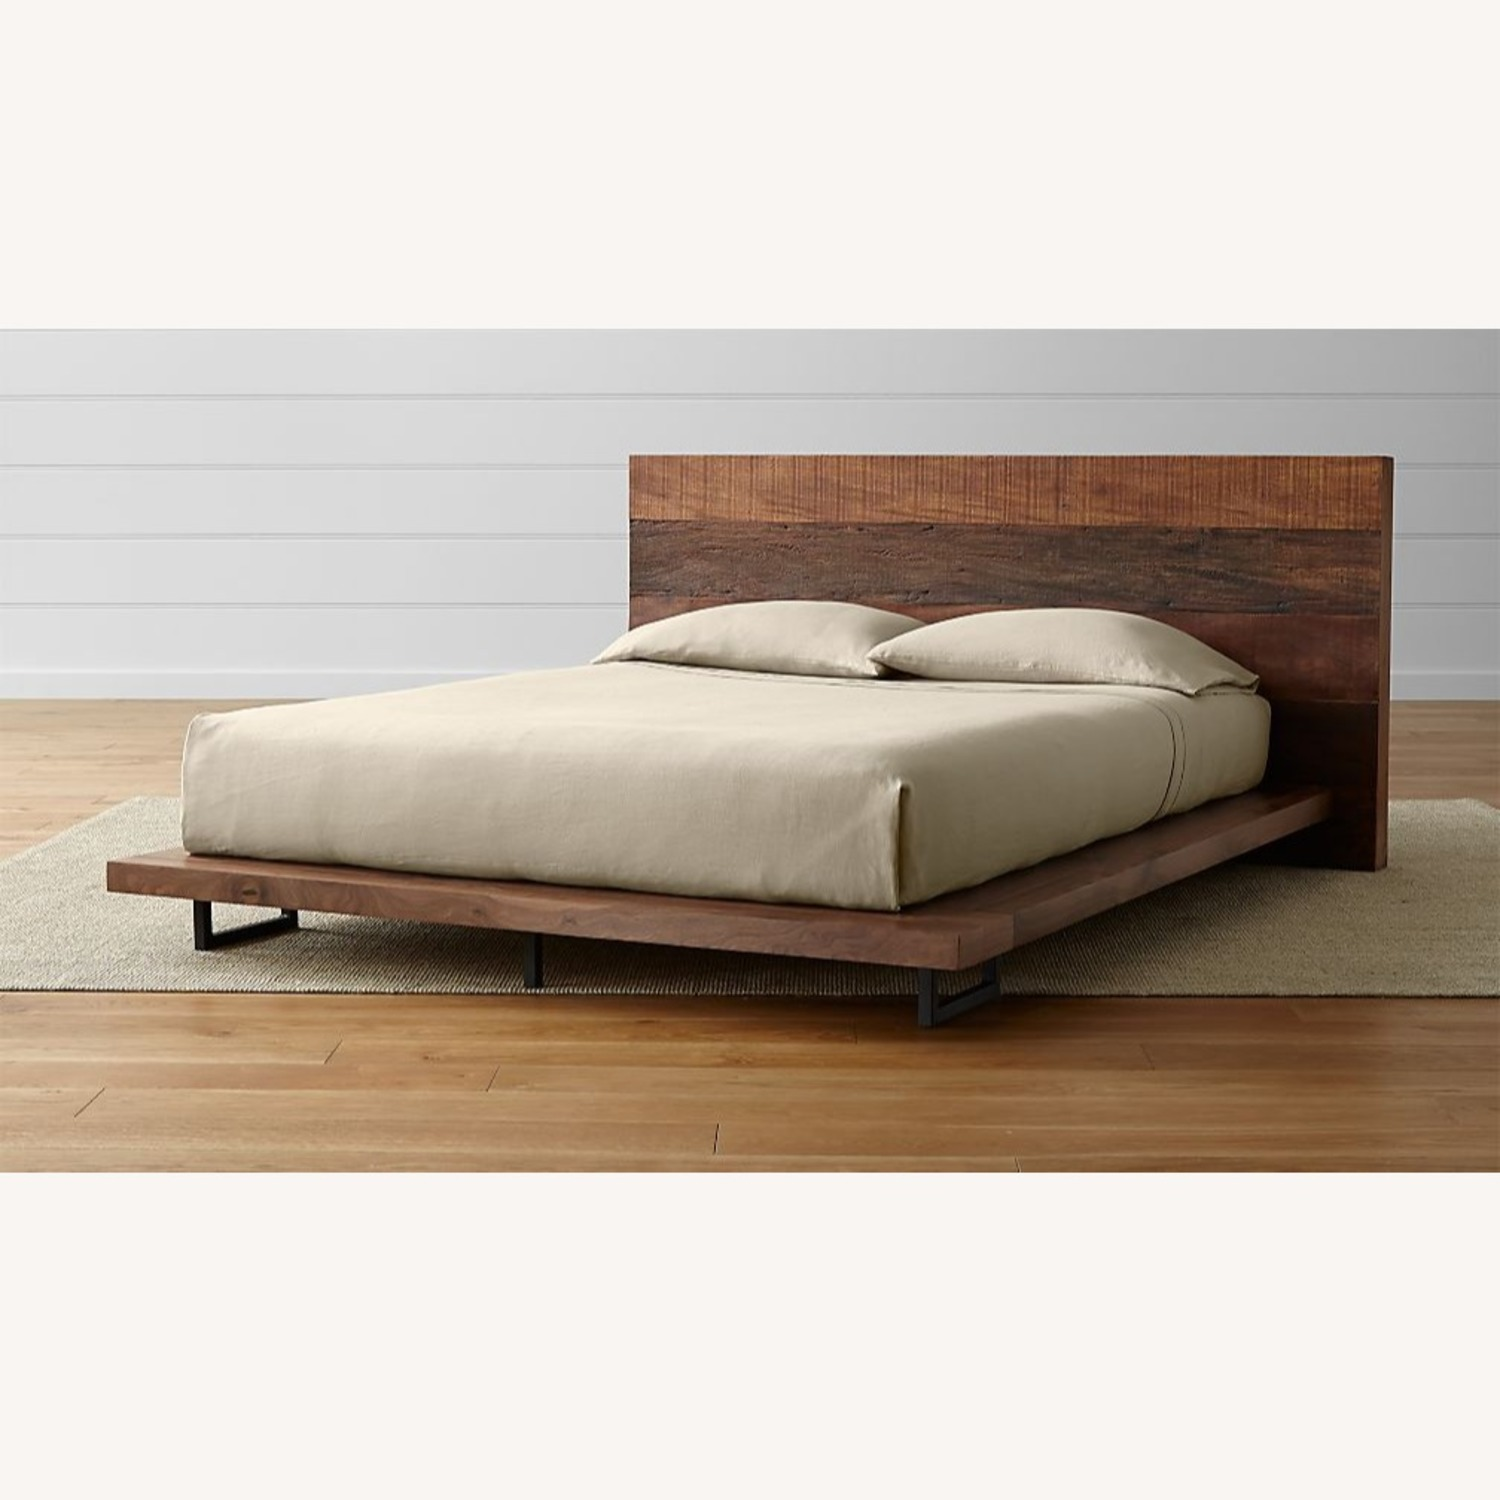 Crate & Barrel Atwood Reclaimed Wood Queen Bed - image-2